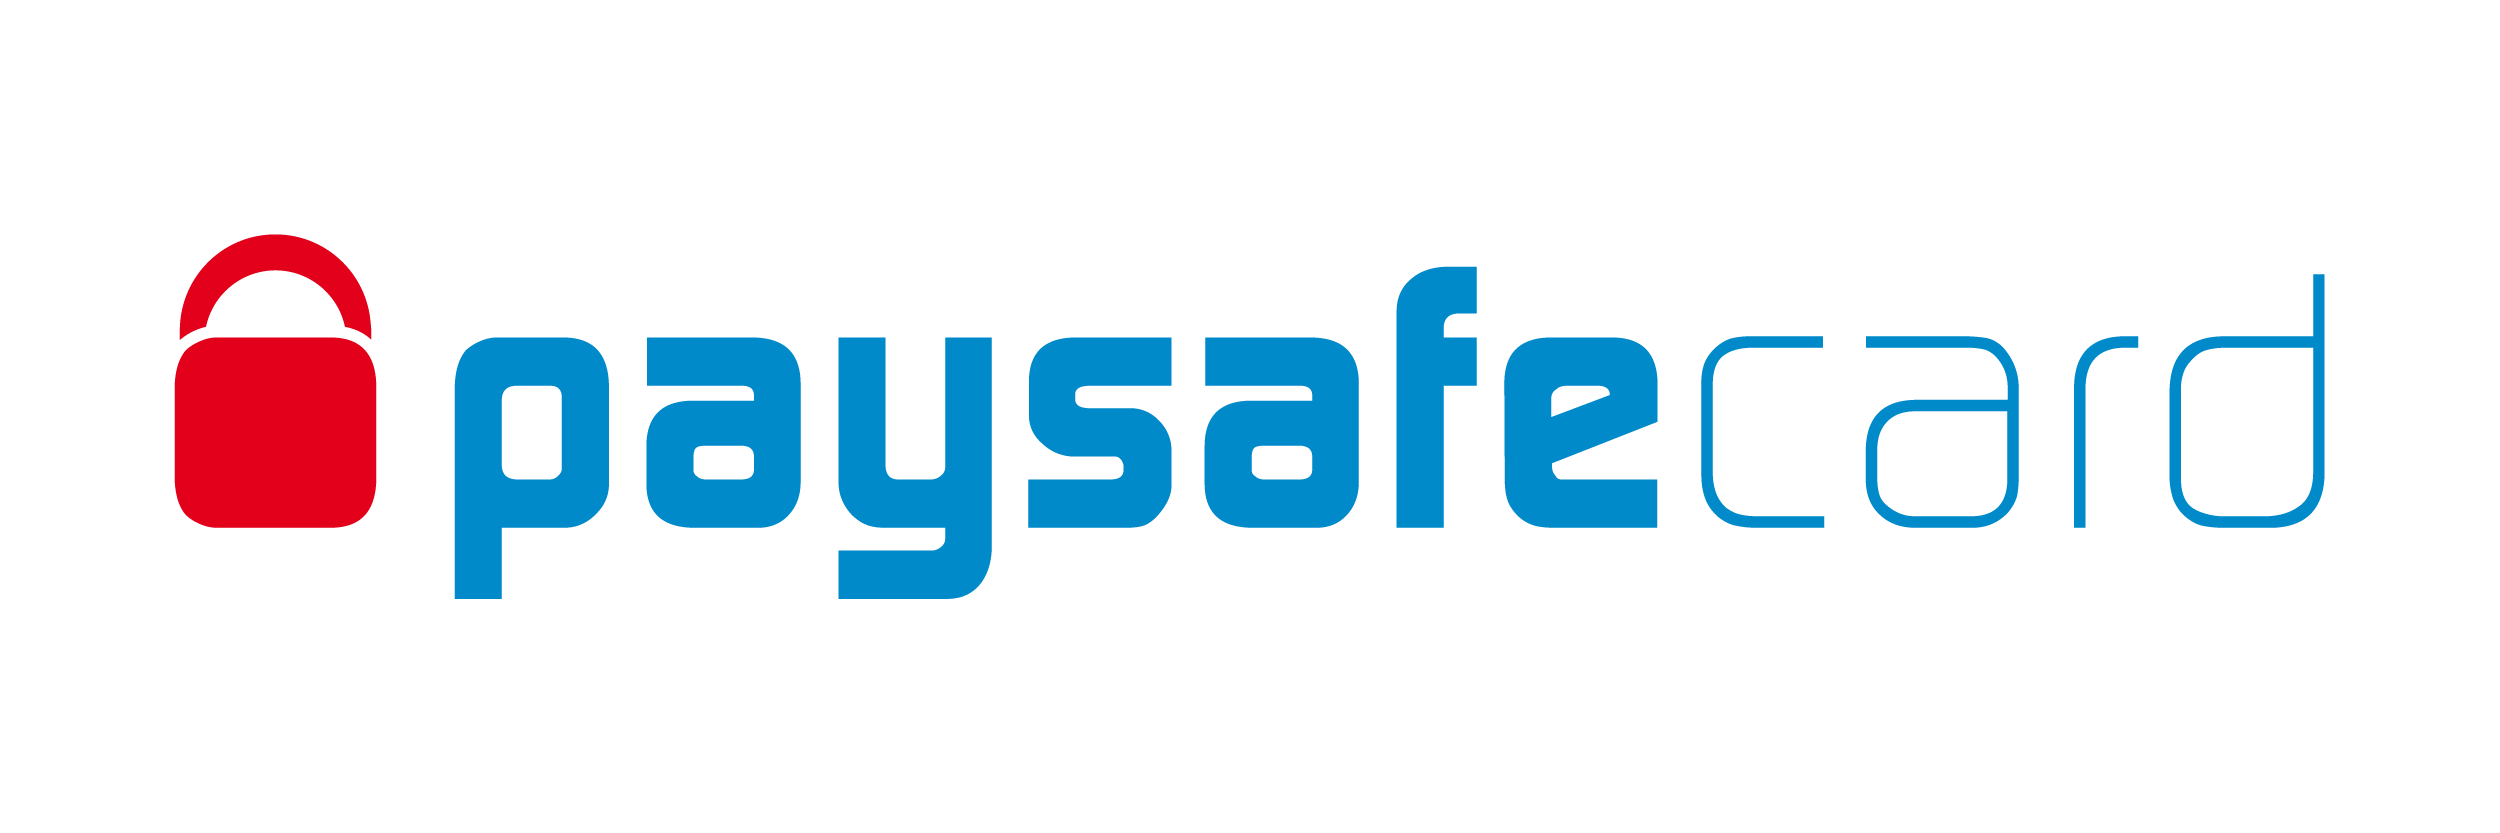 shop paysafecard